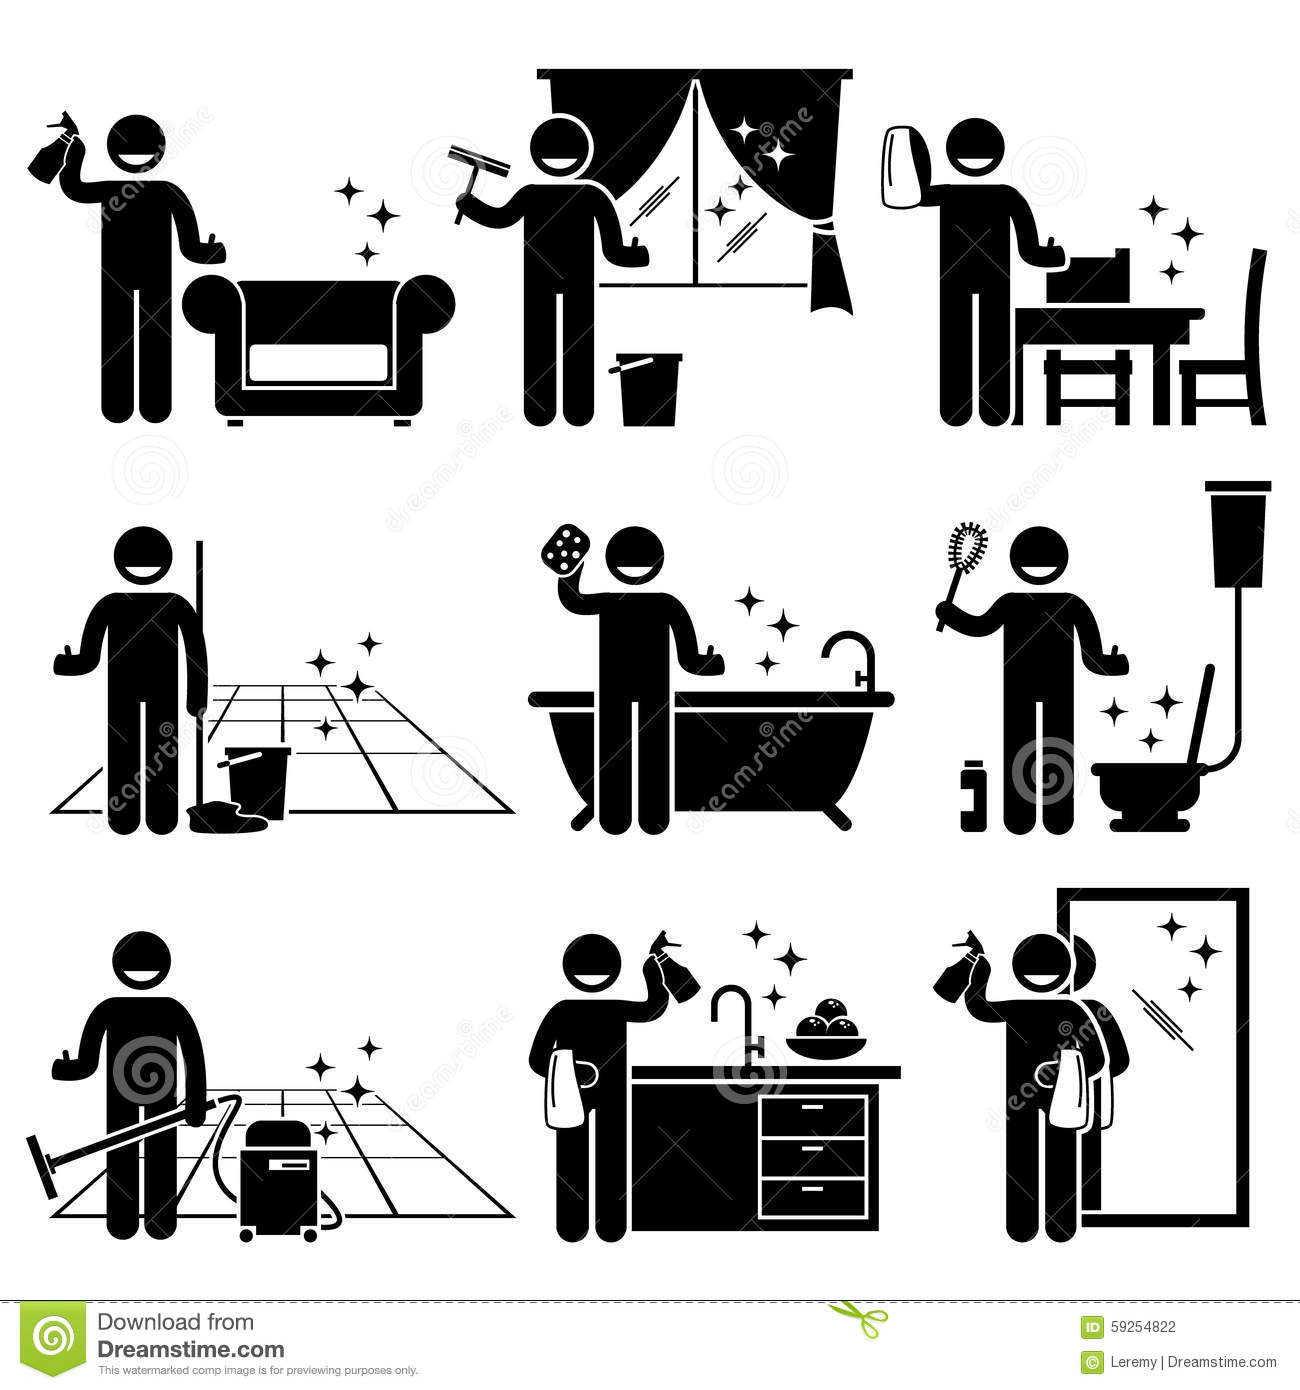 Human pictogram stick figures showing a man doing household work with